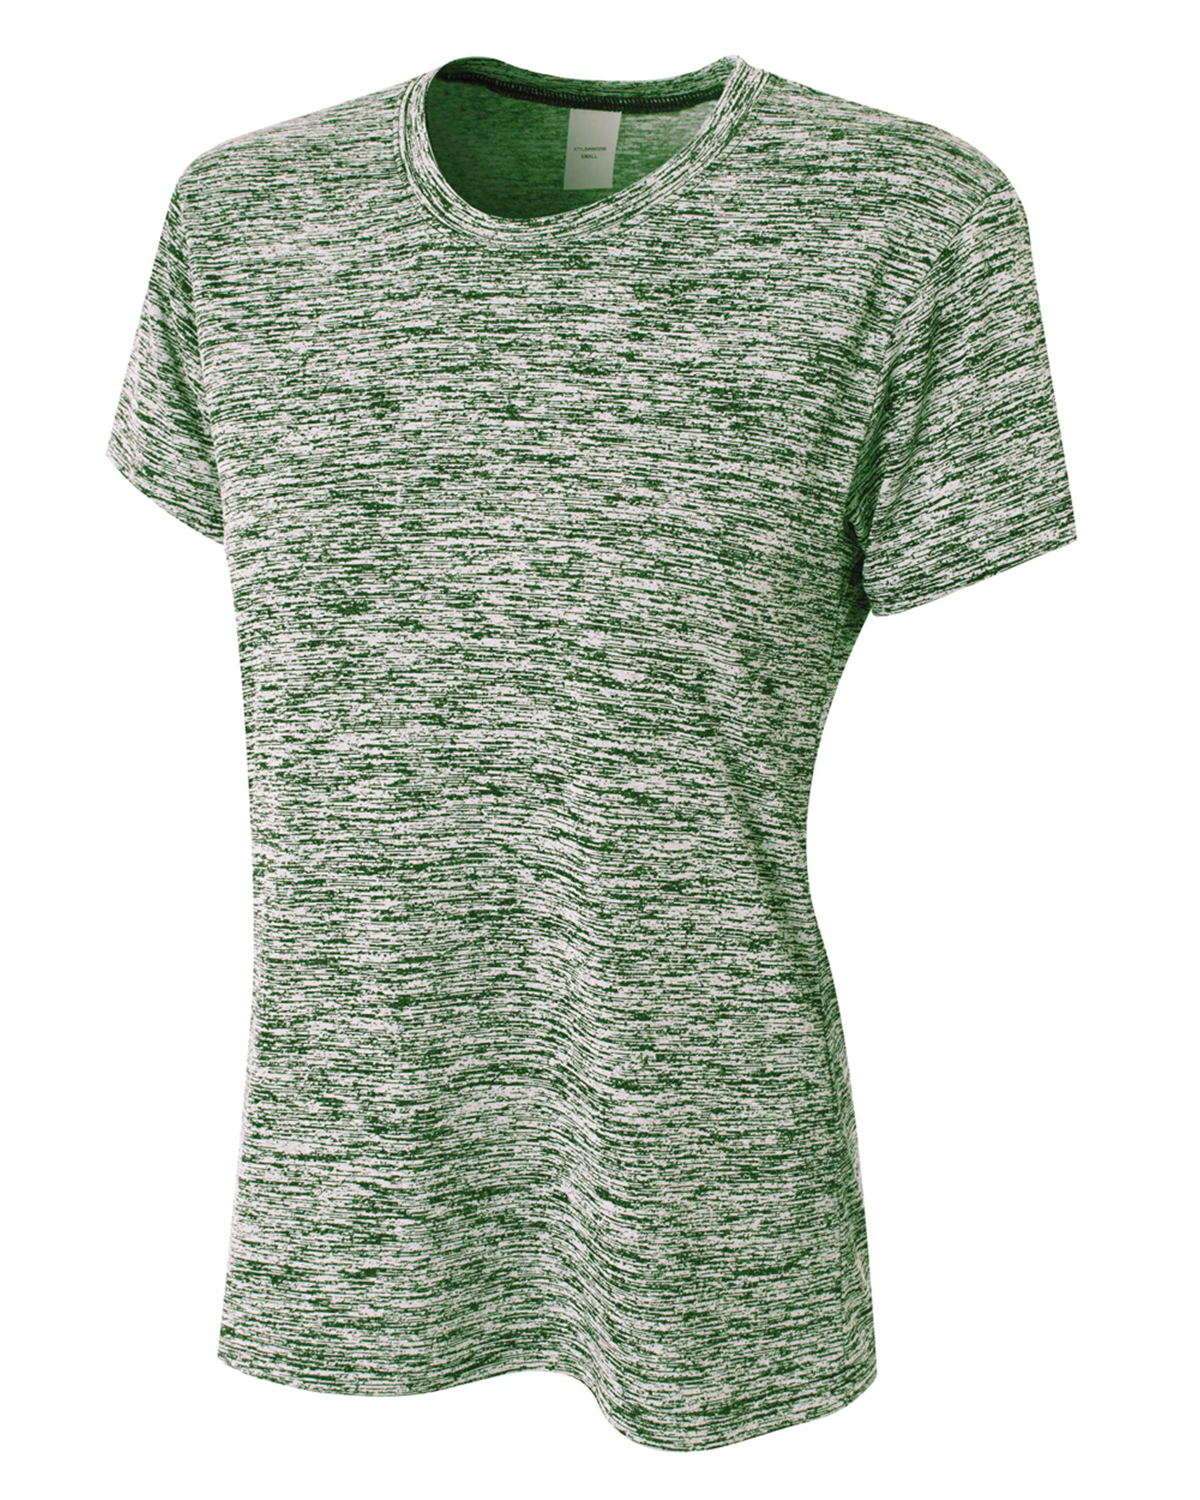 A4 - A4NW3296 Women Space Dye Tech T